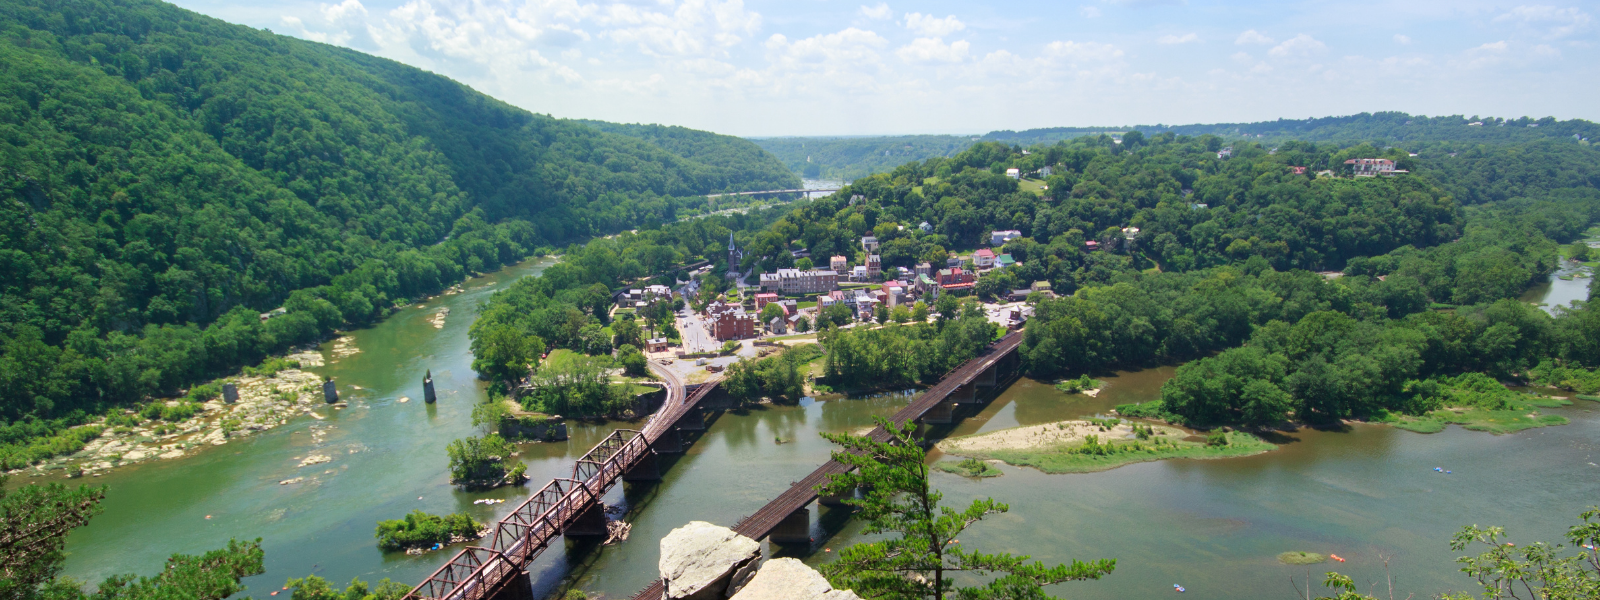 Harpers Ferry - Where History, Nature, and Adventure Meet